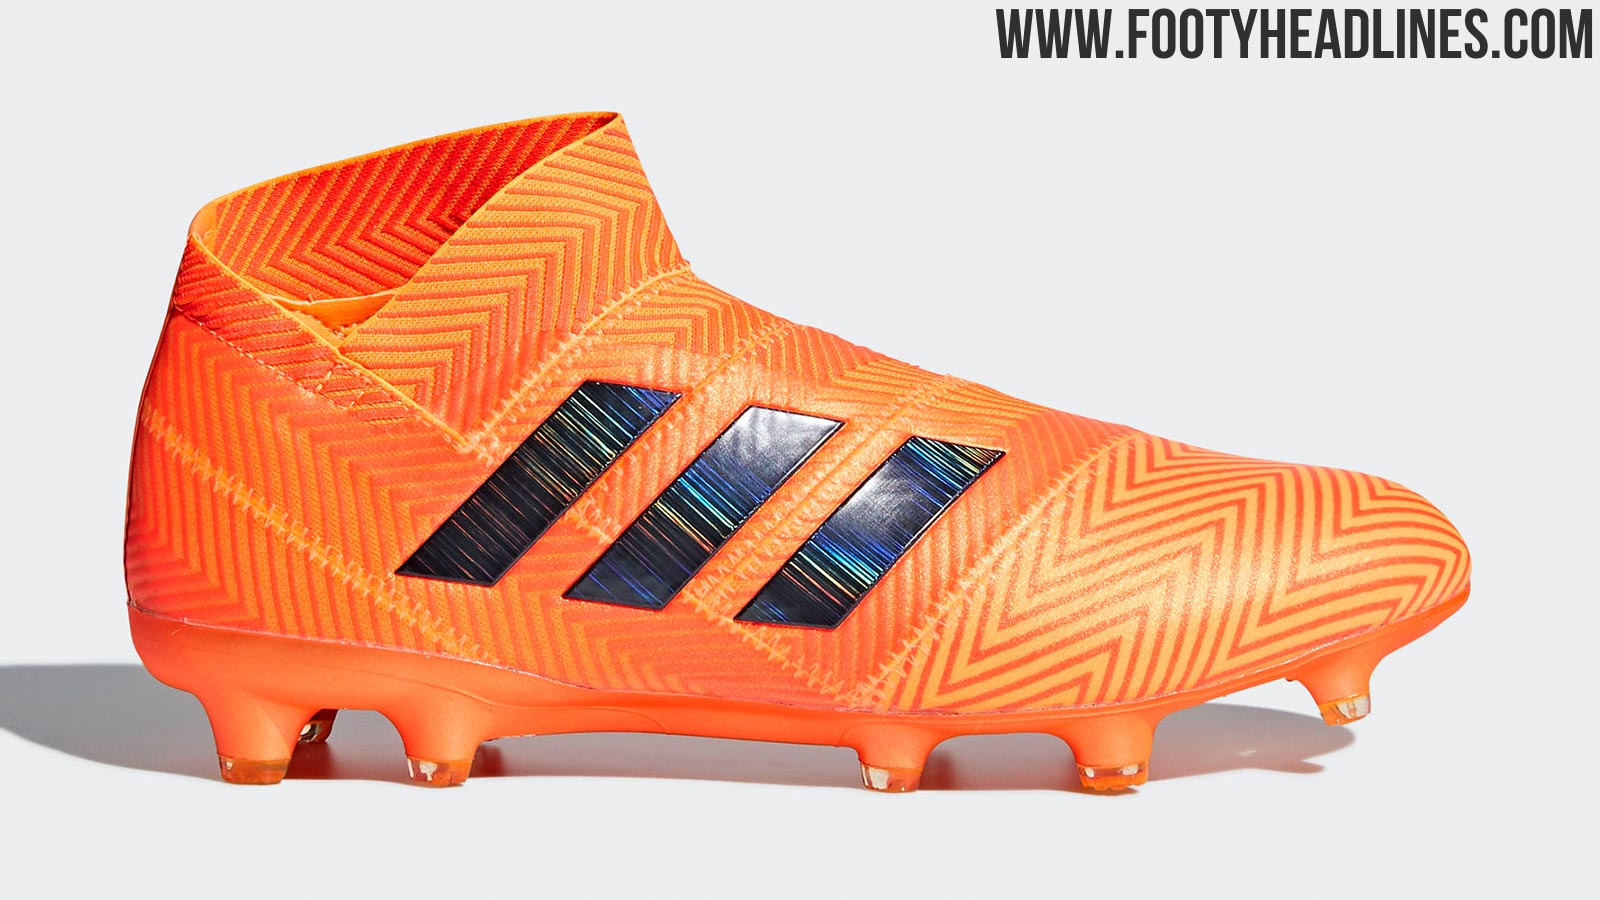 6cc7401a6 Energy Mode Pack - Adidas 2018 World Cup Boots Leaked - Next-Gen X ...